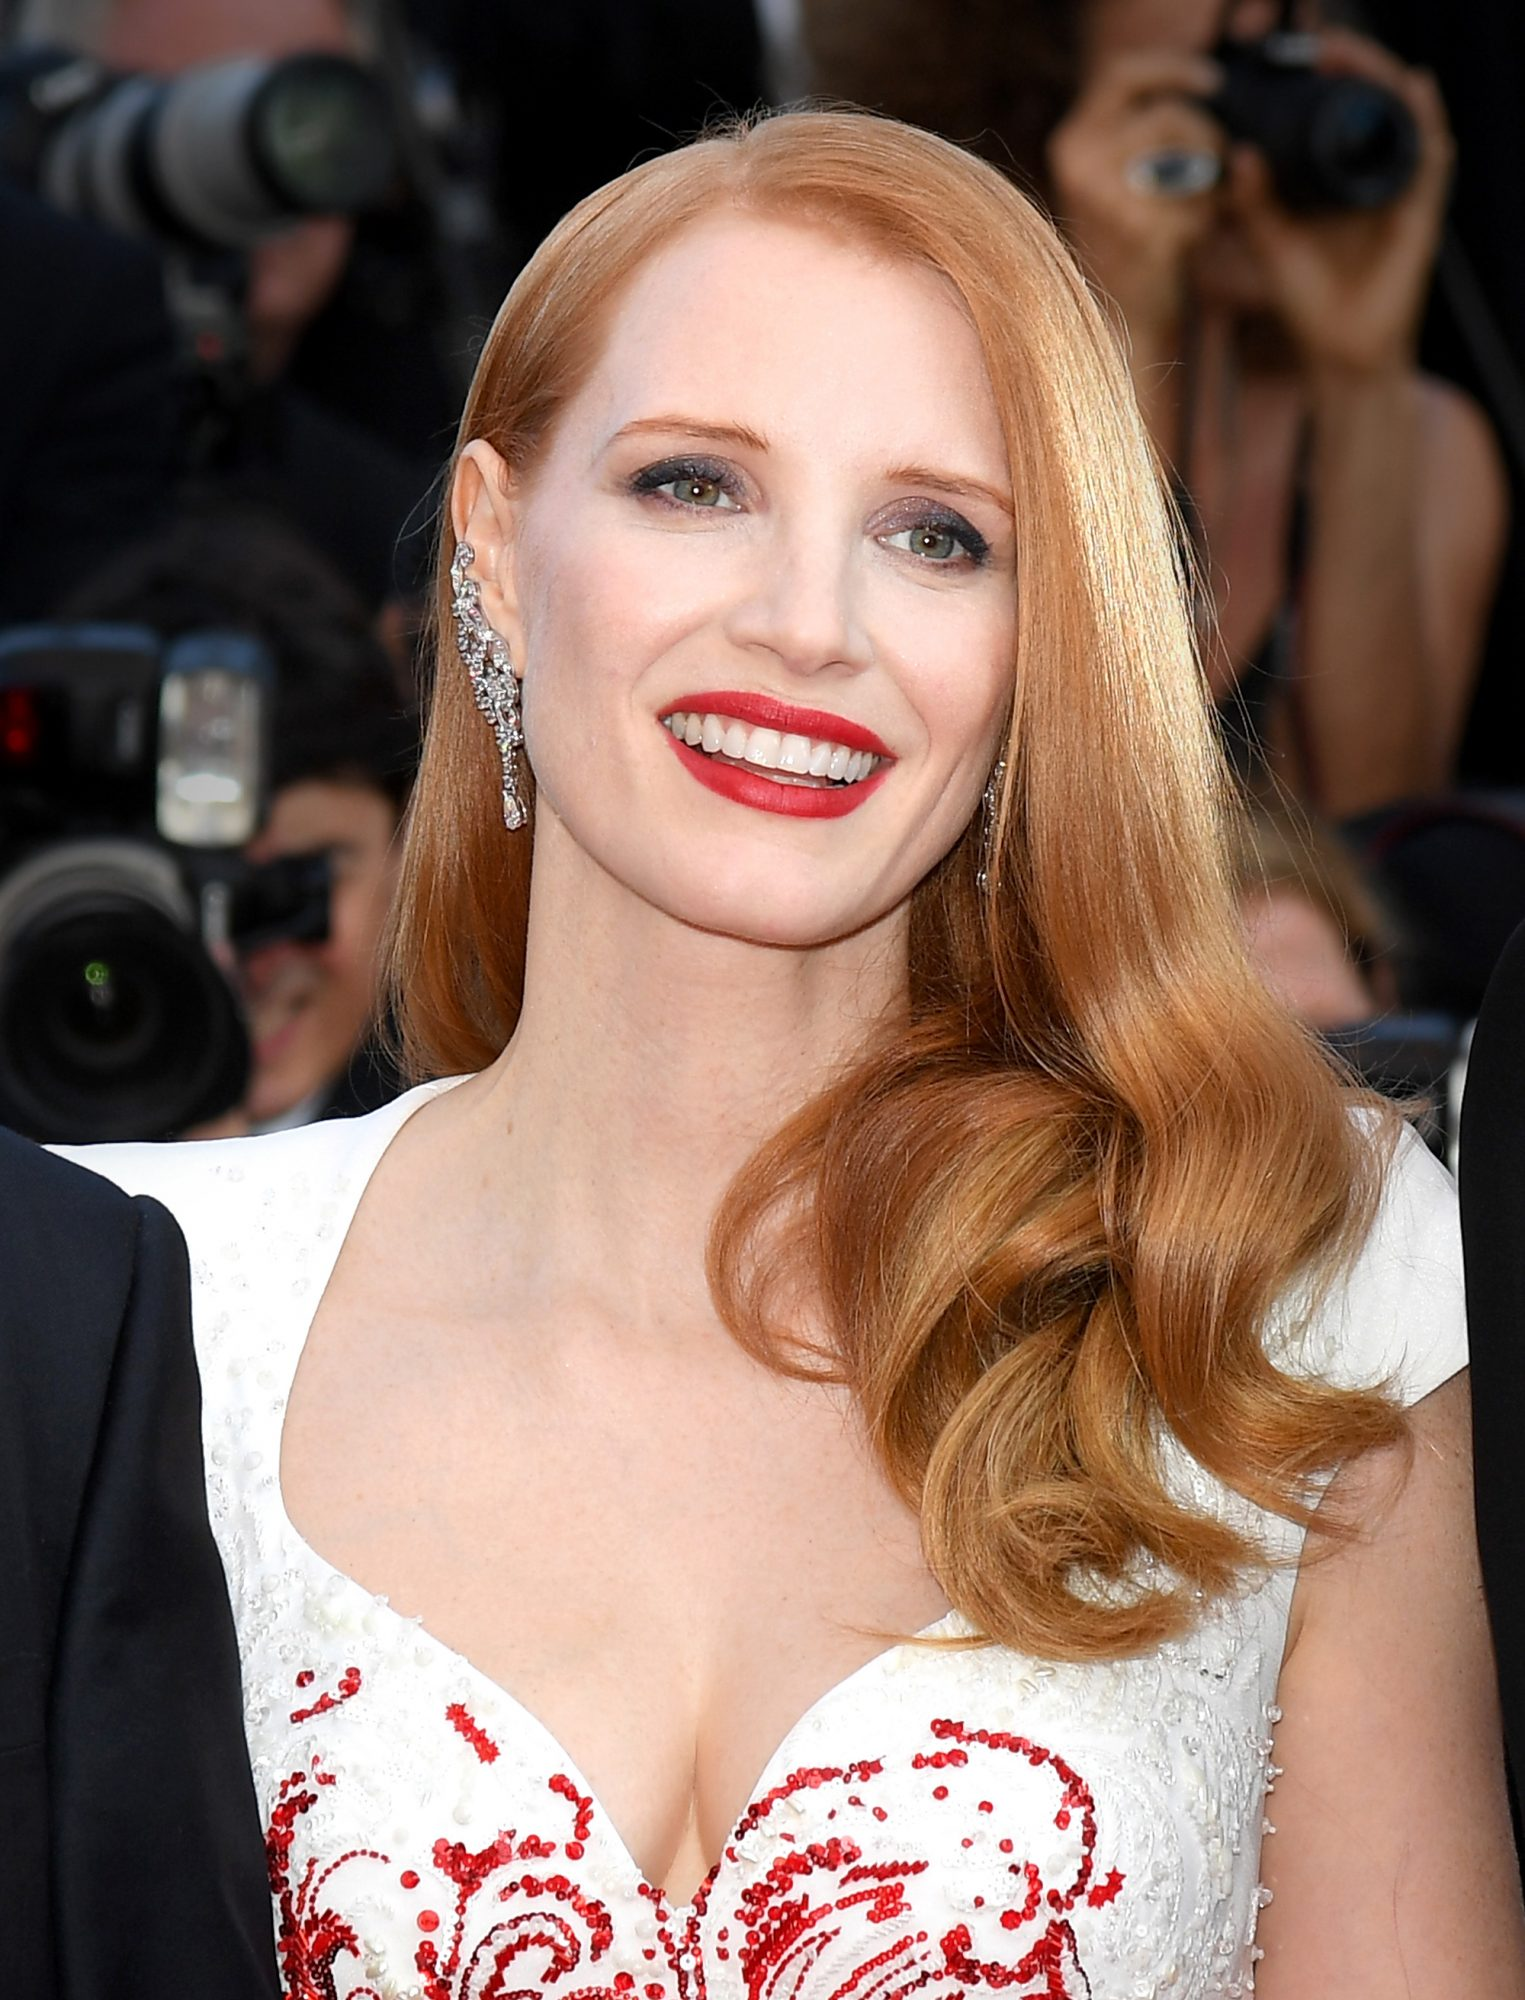 The 7 Beauty Products Jessica Chastain Swears By